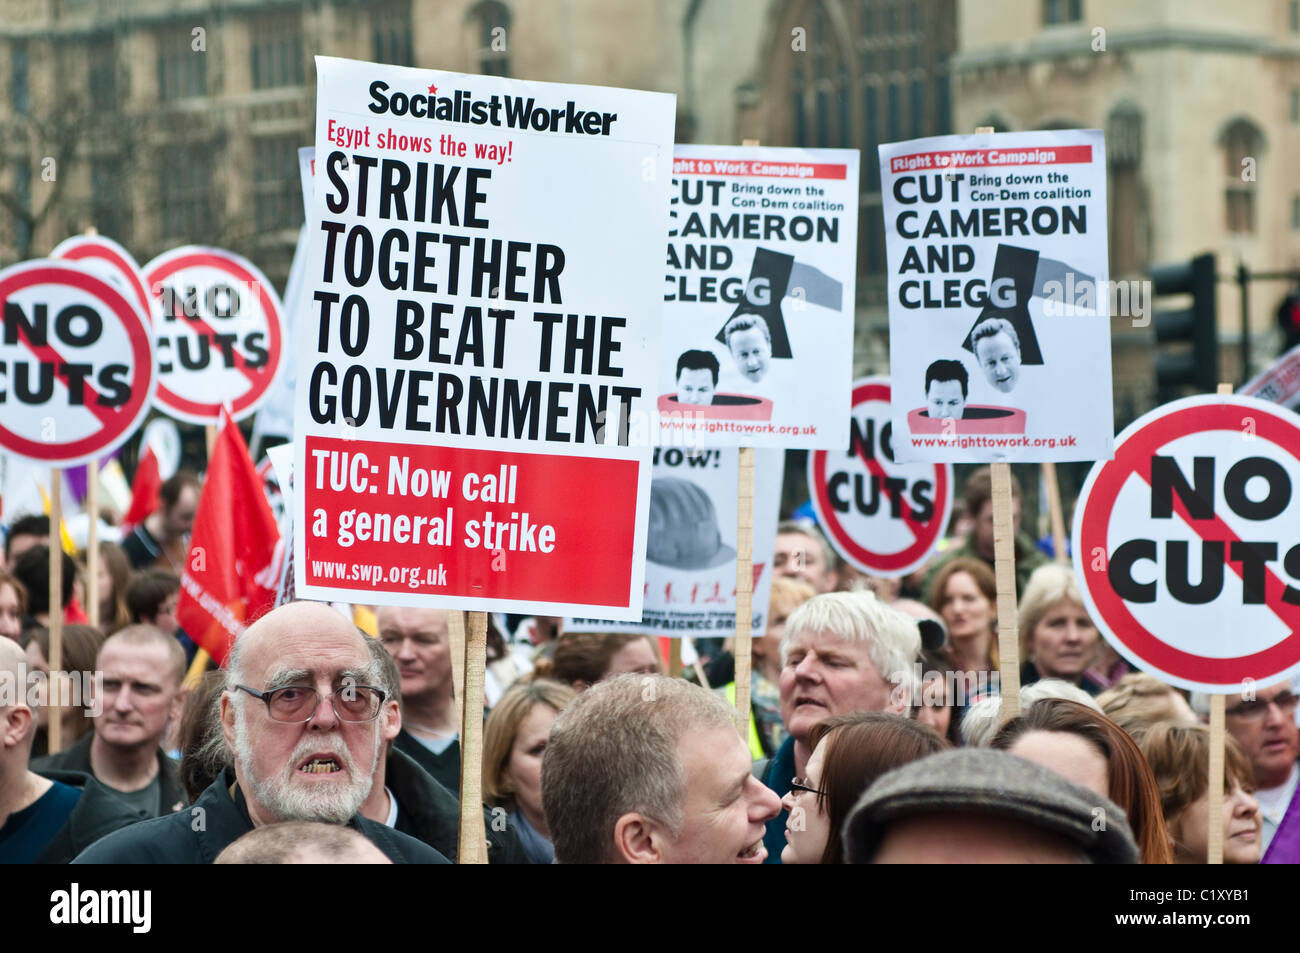 Thousands of people march against government spending cuts, TUC March for the Alternative, London, UK, 26/03/2011 - Stock Image